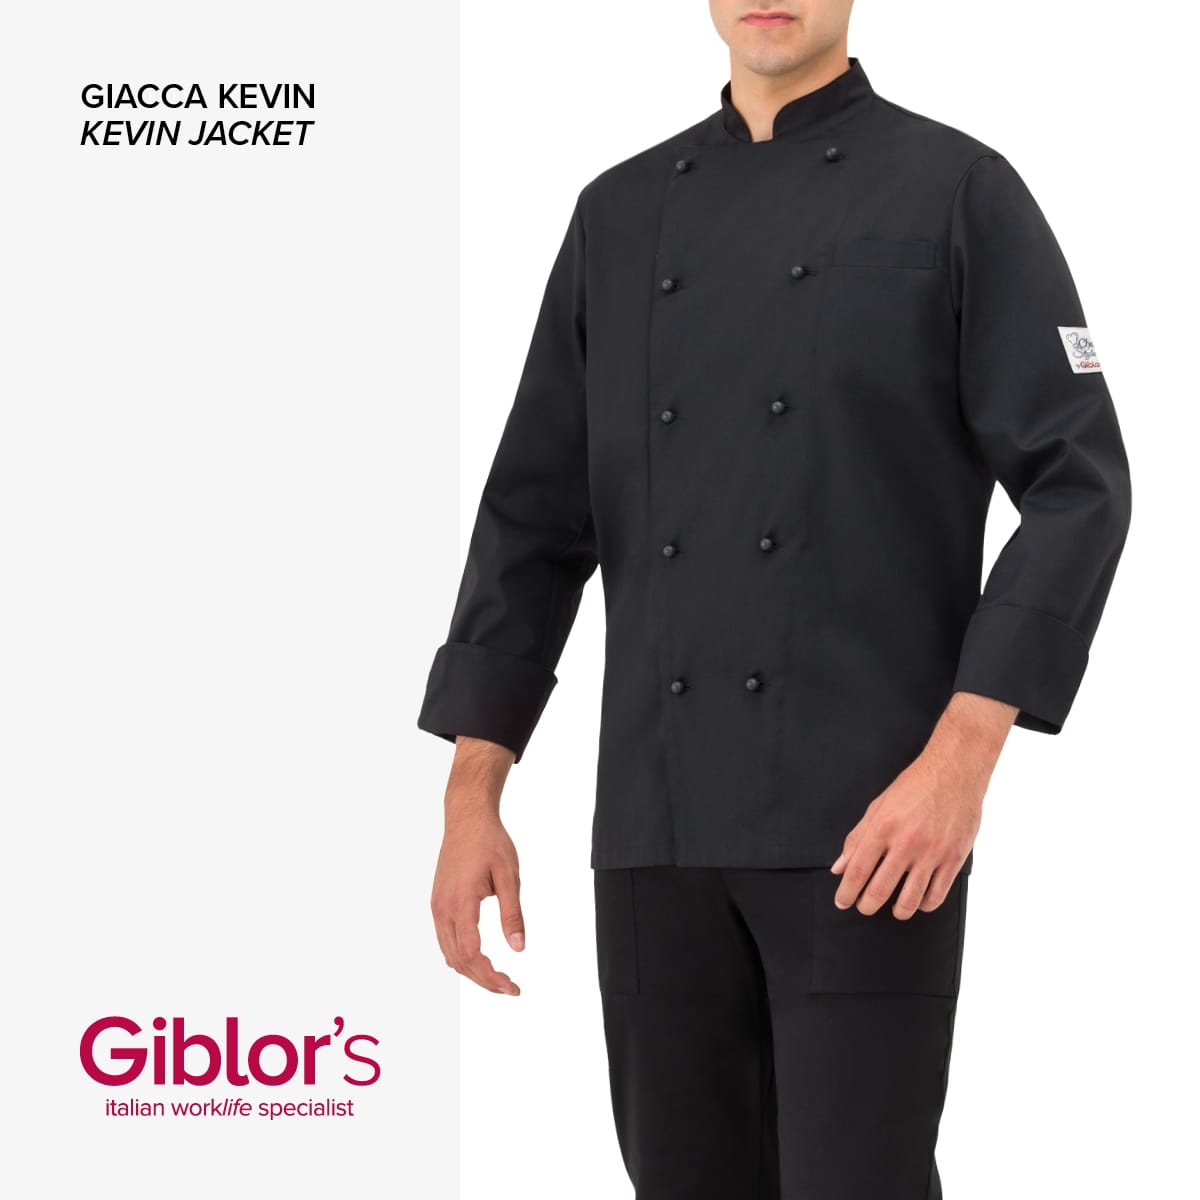 Giblor's - GIACCA KEVIN - Art 17P08G101 Nero